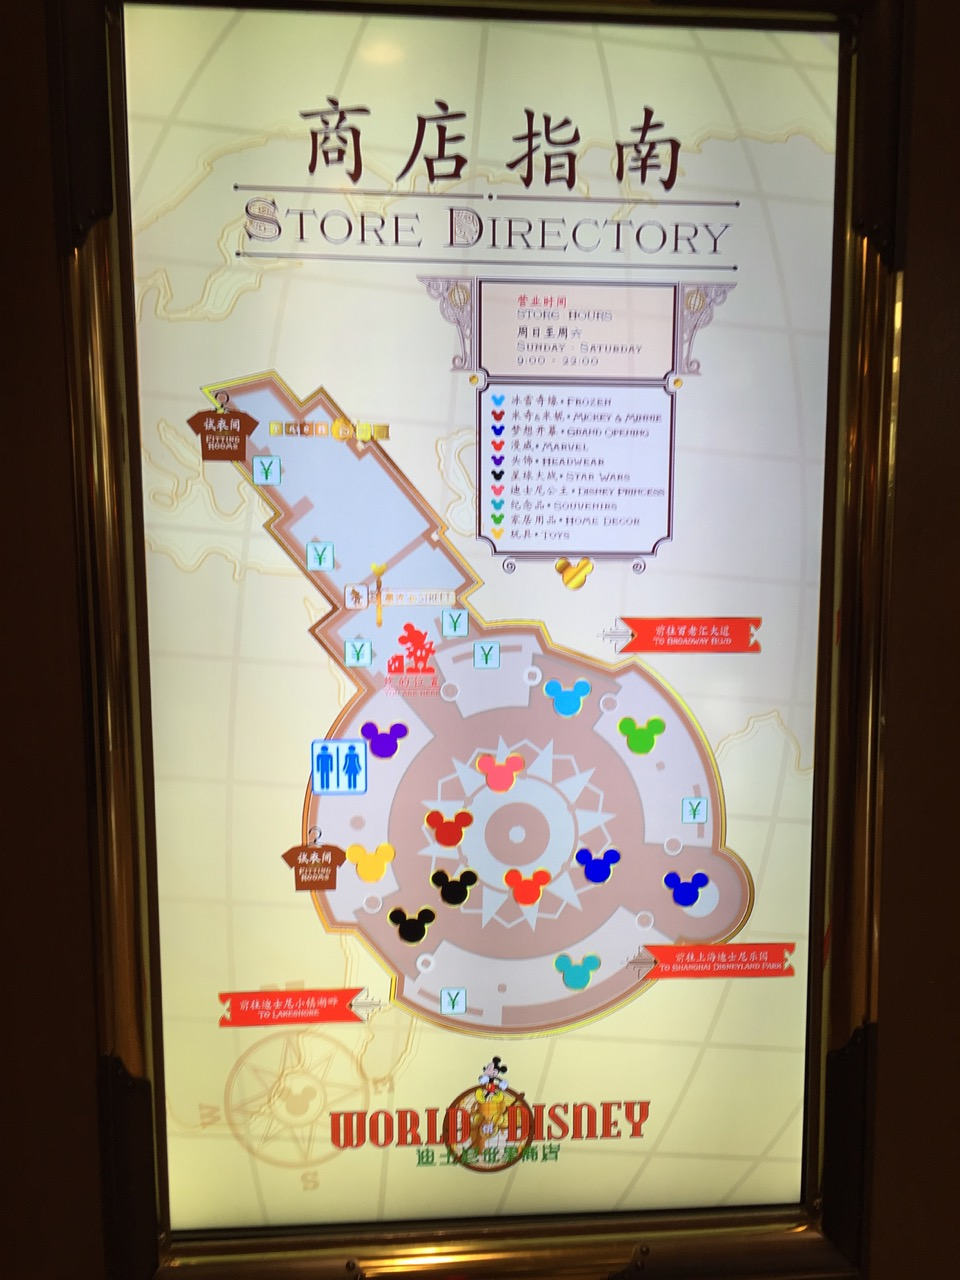 World of Disney store map. Photo by J. Jeff Kober.